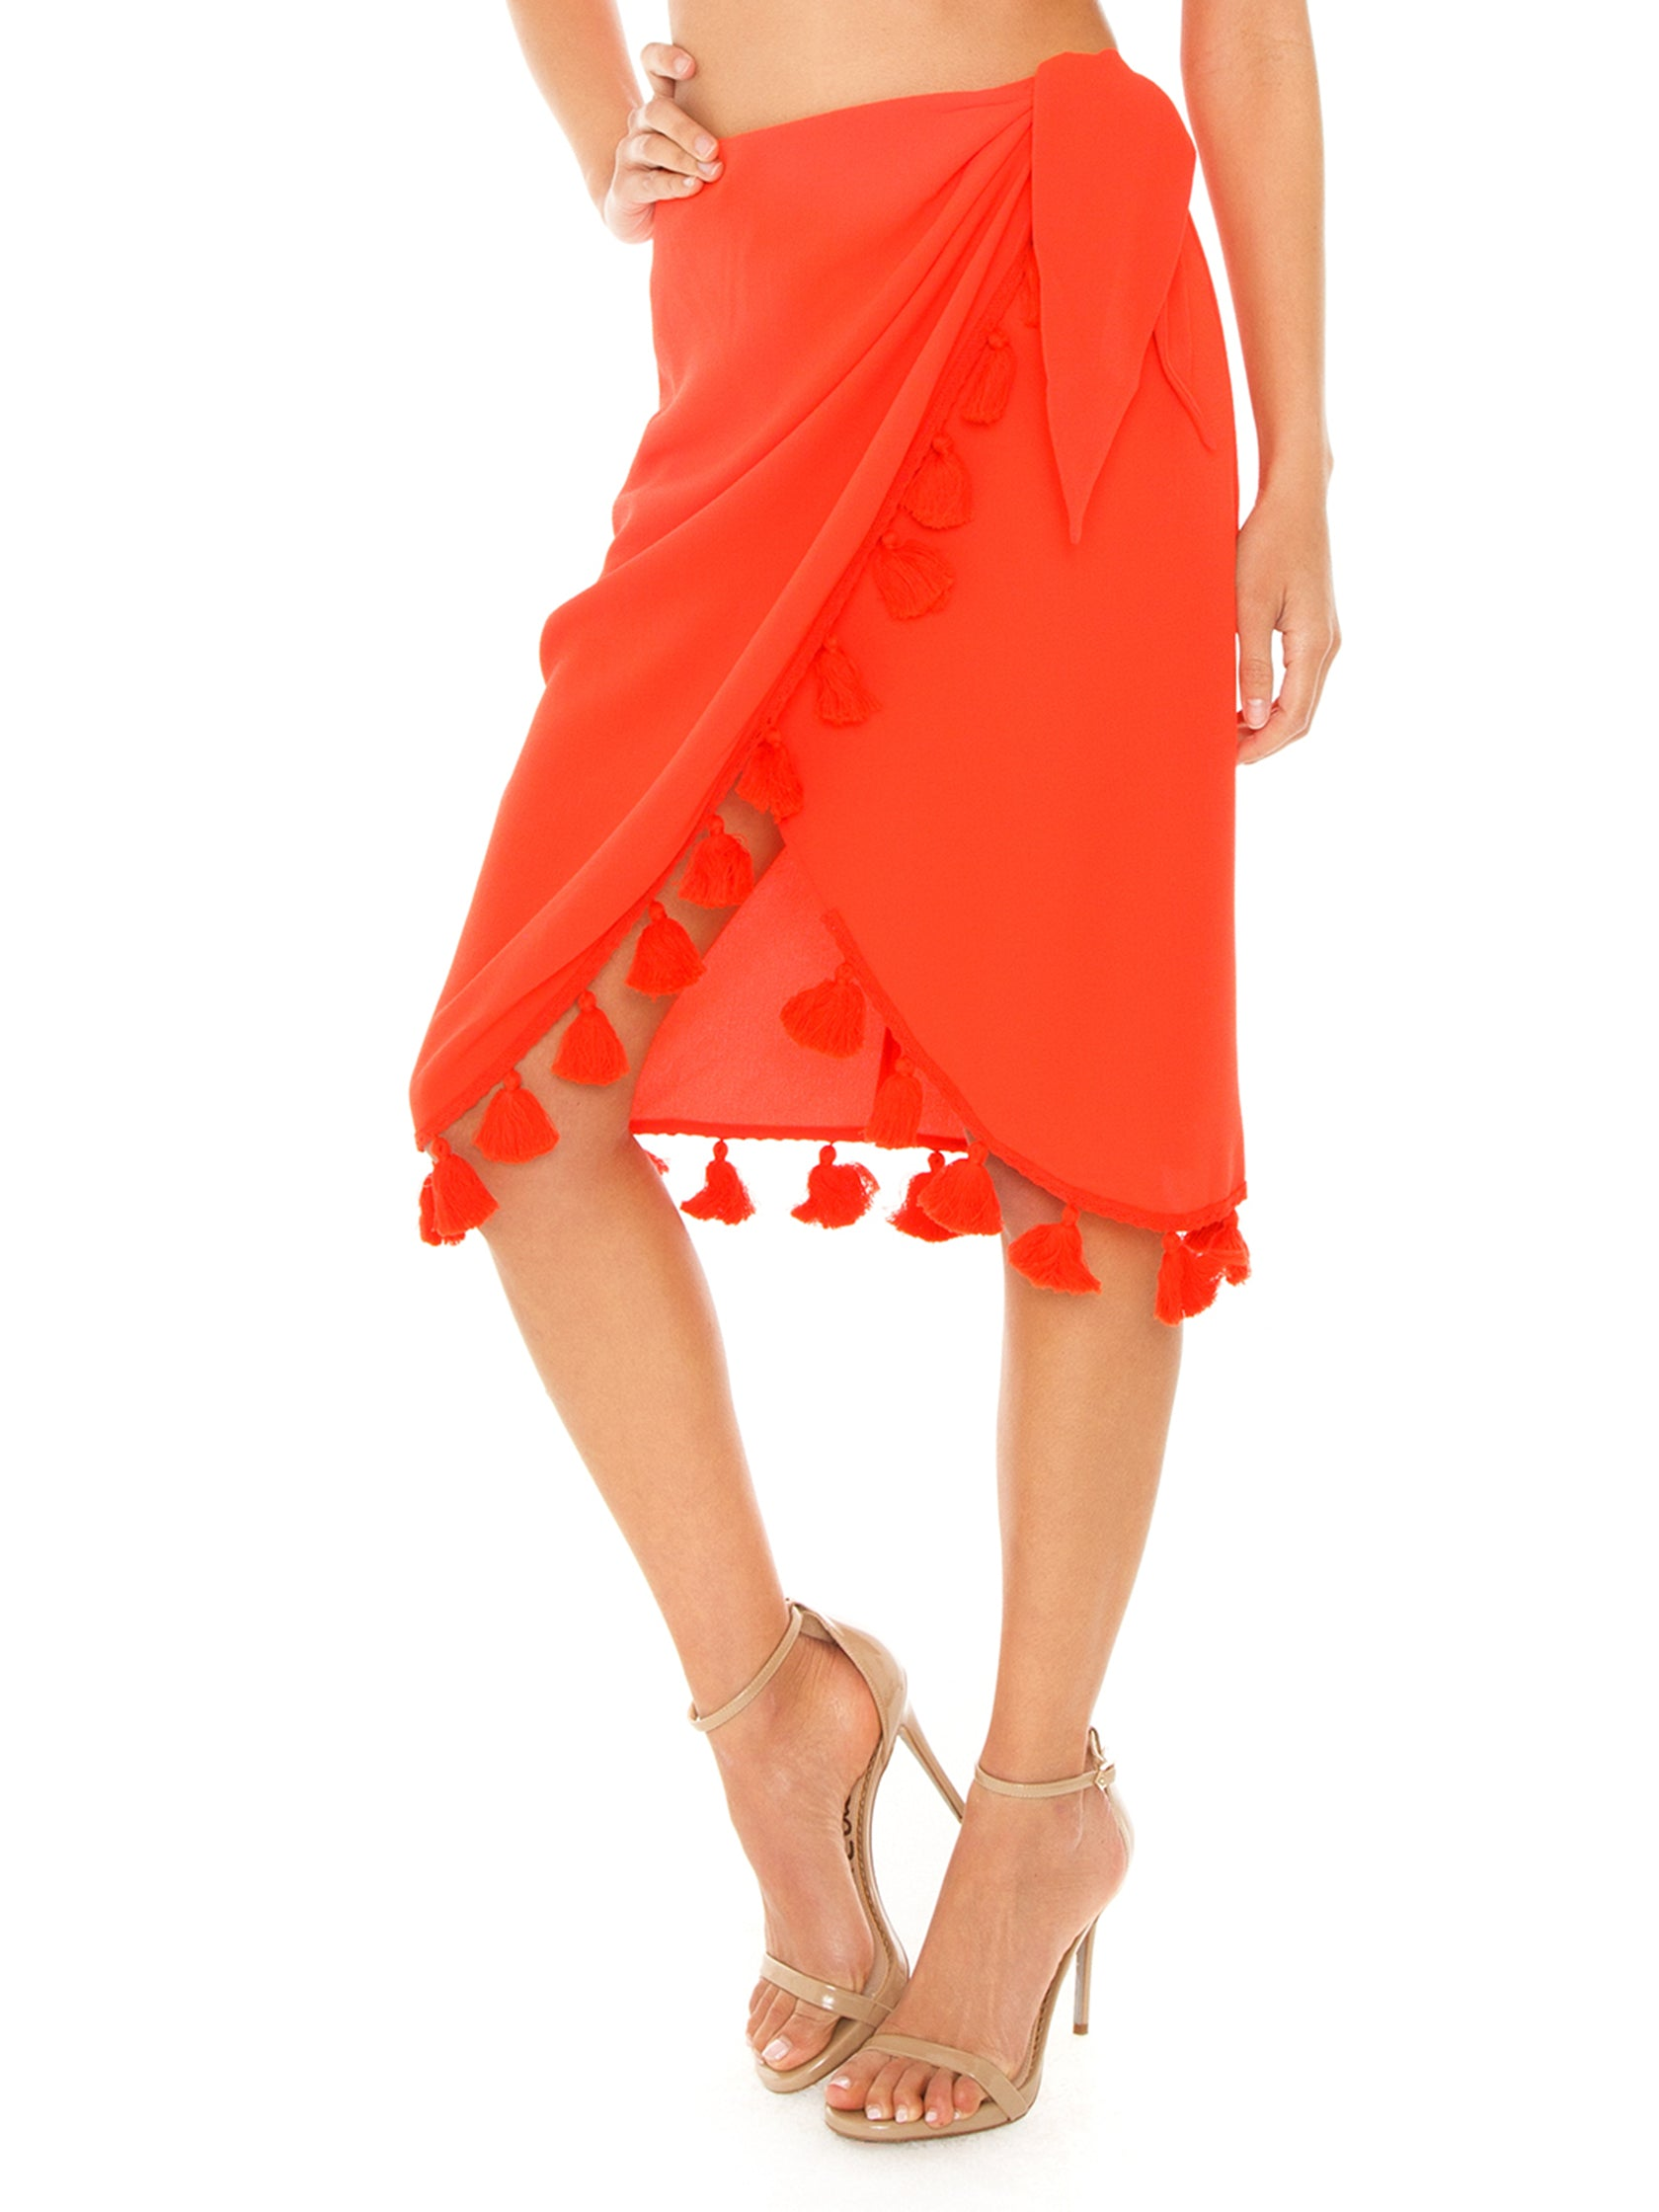 Women outfit in a skirt rental from Show Me Your Mumu called Anjolie Wrap Skirt W/tassels